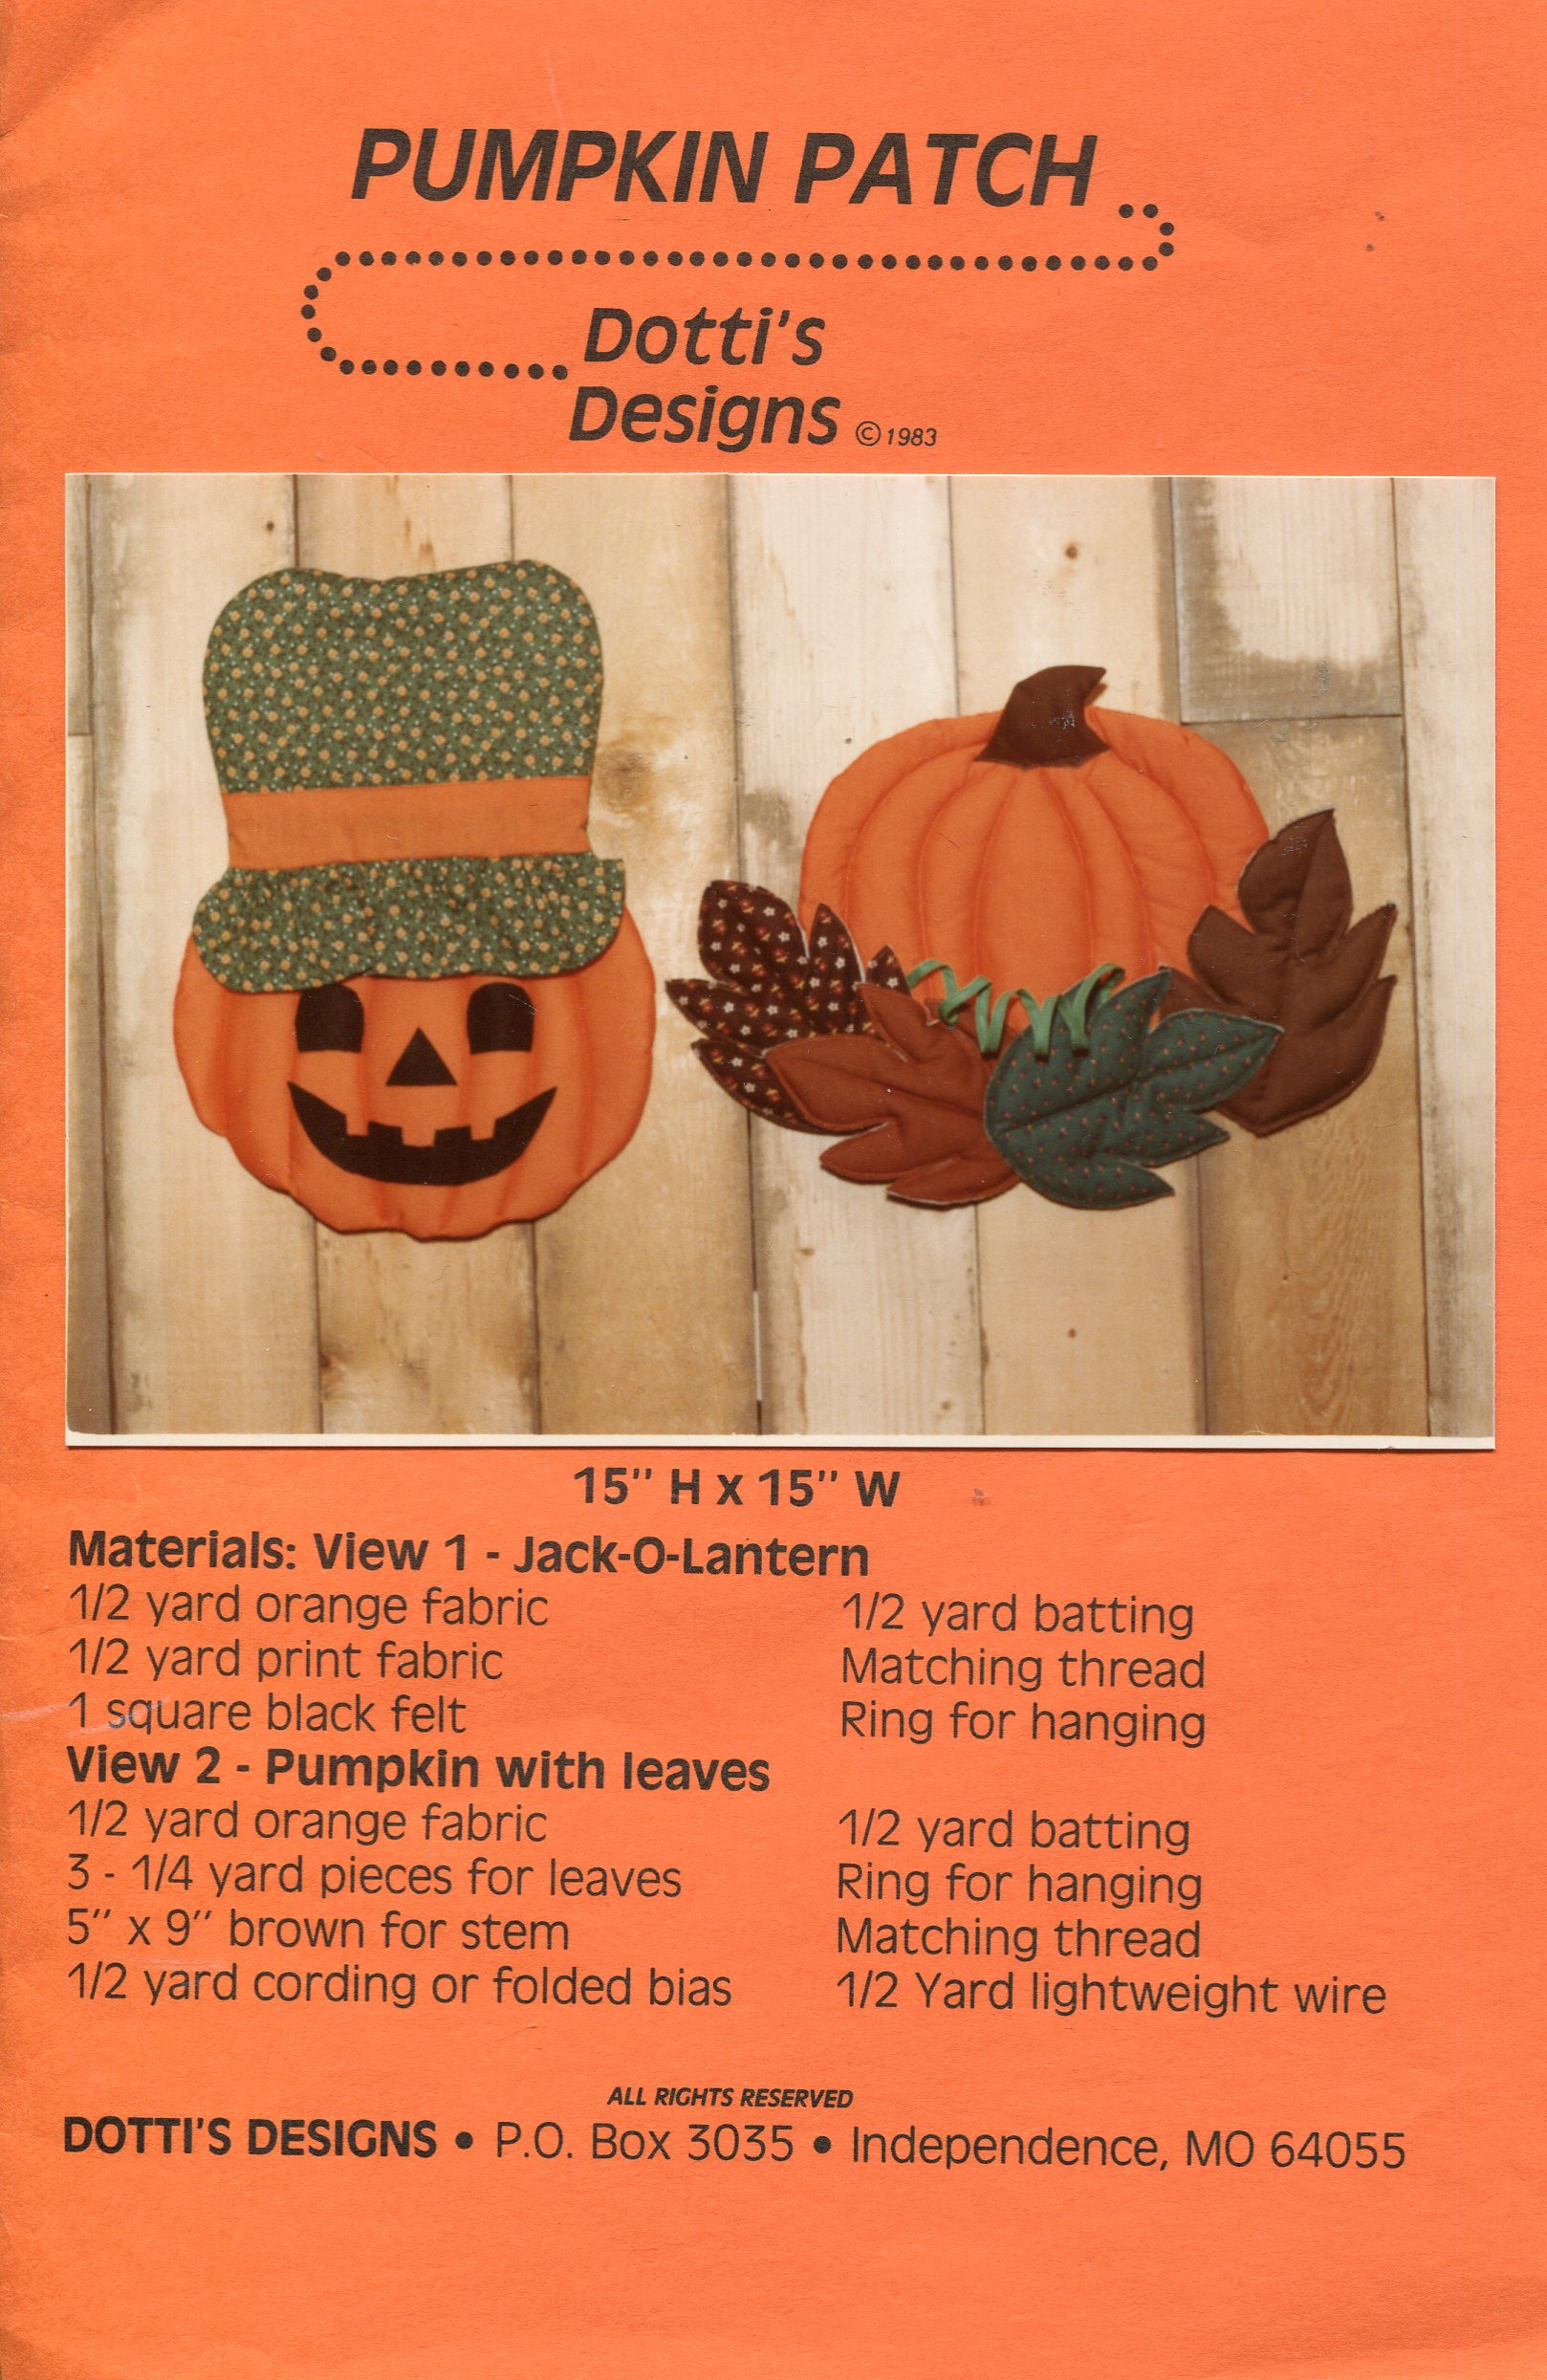 Dotti's Designs Pumpkin Patch